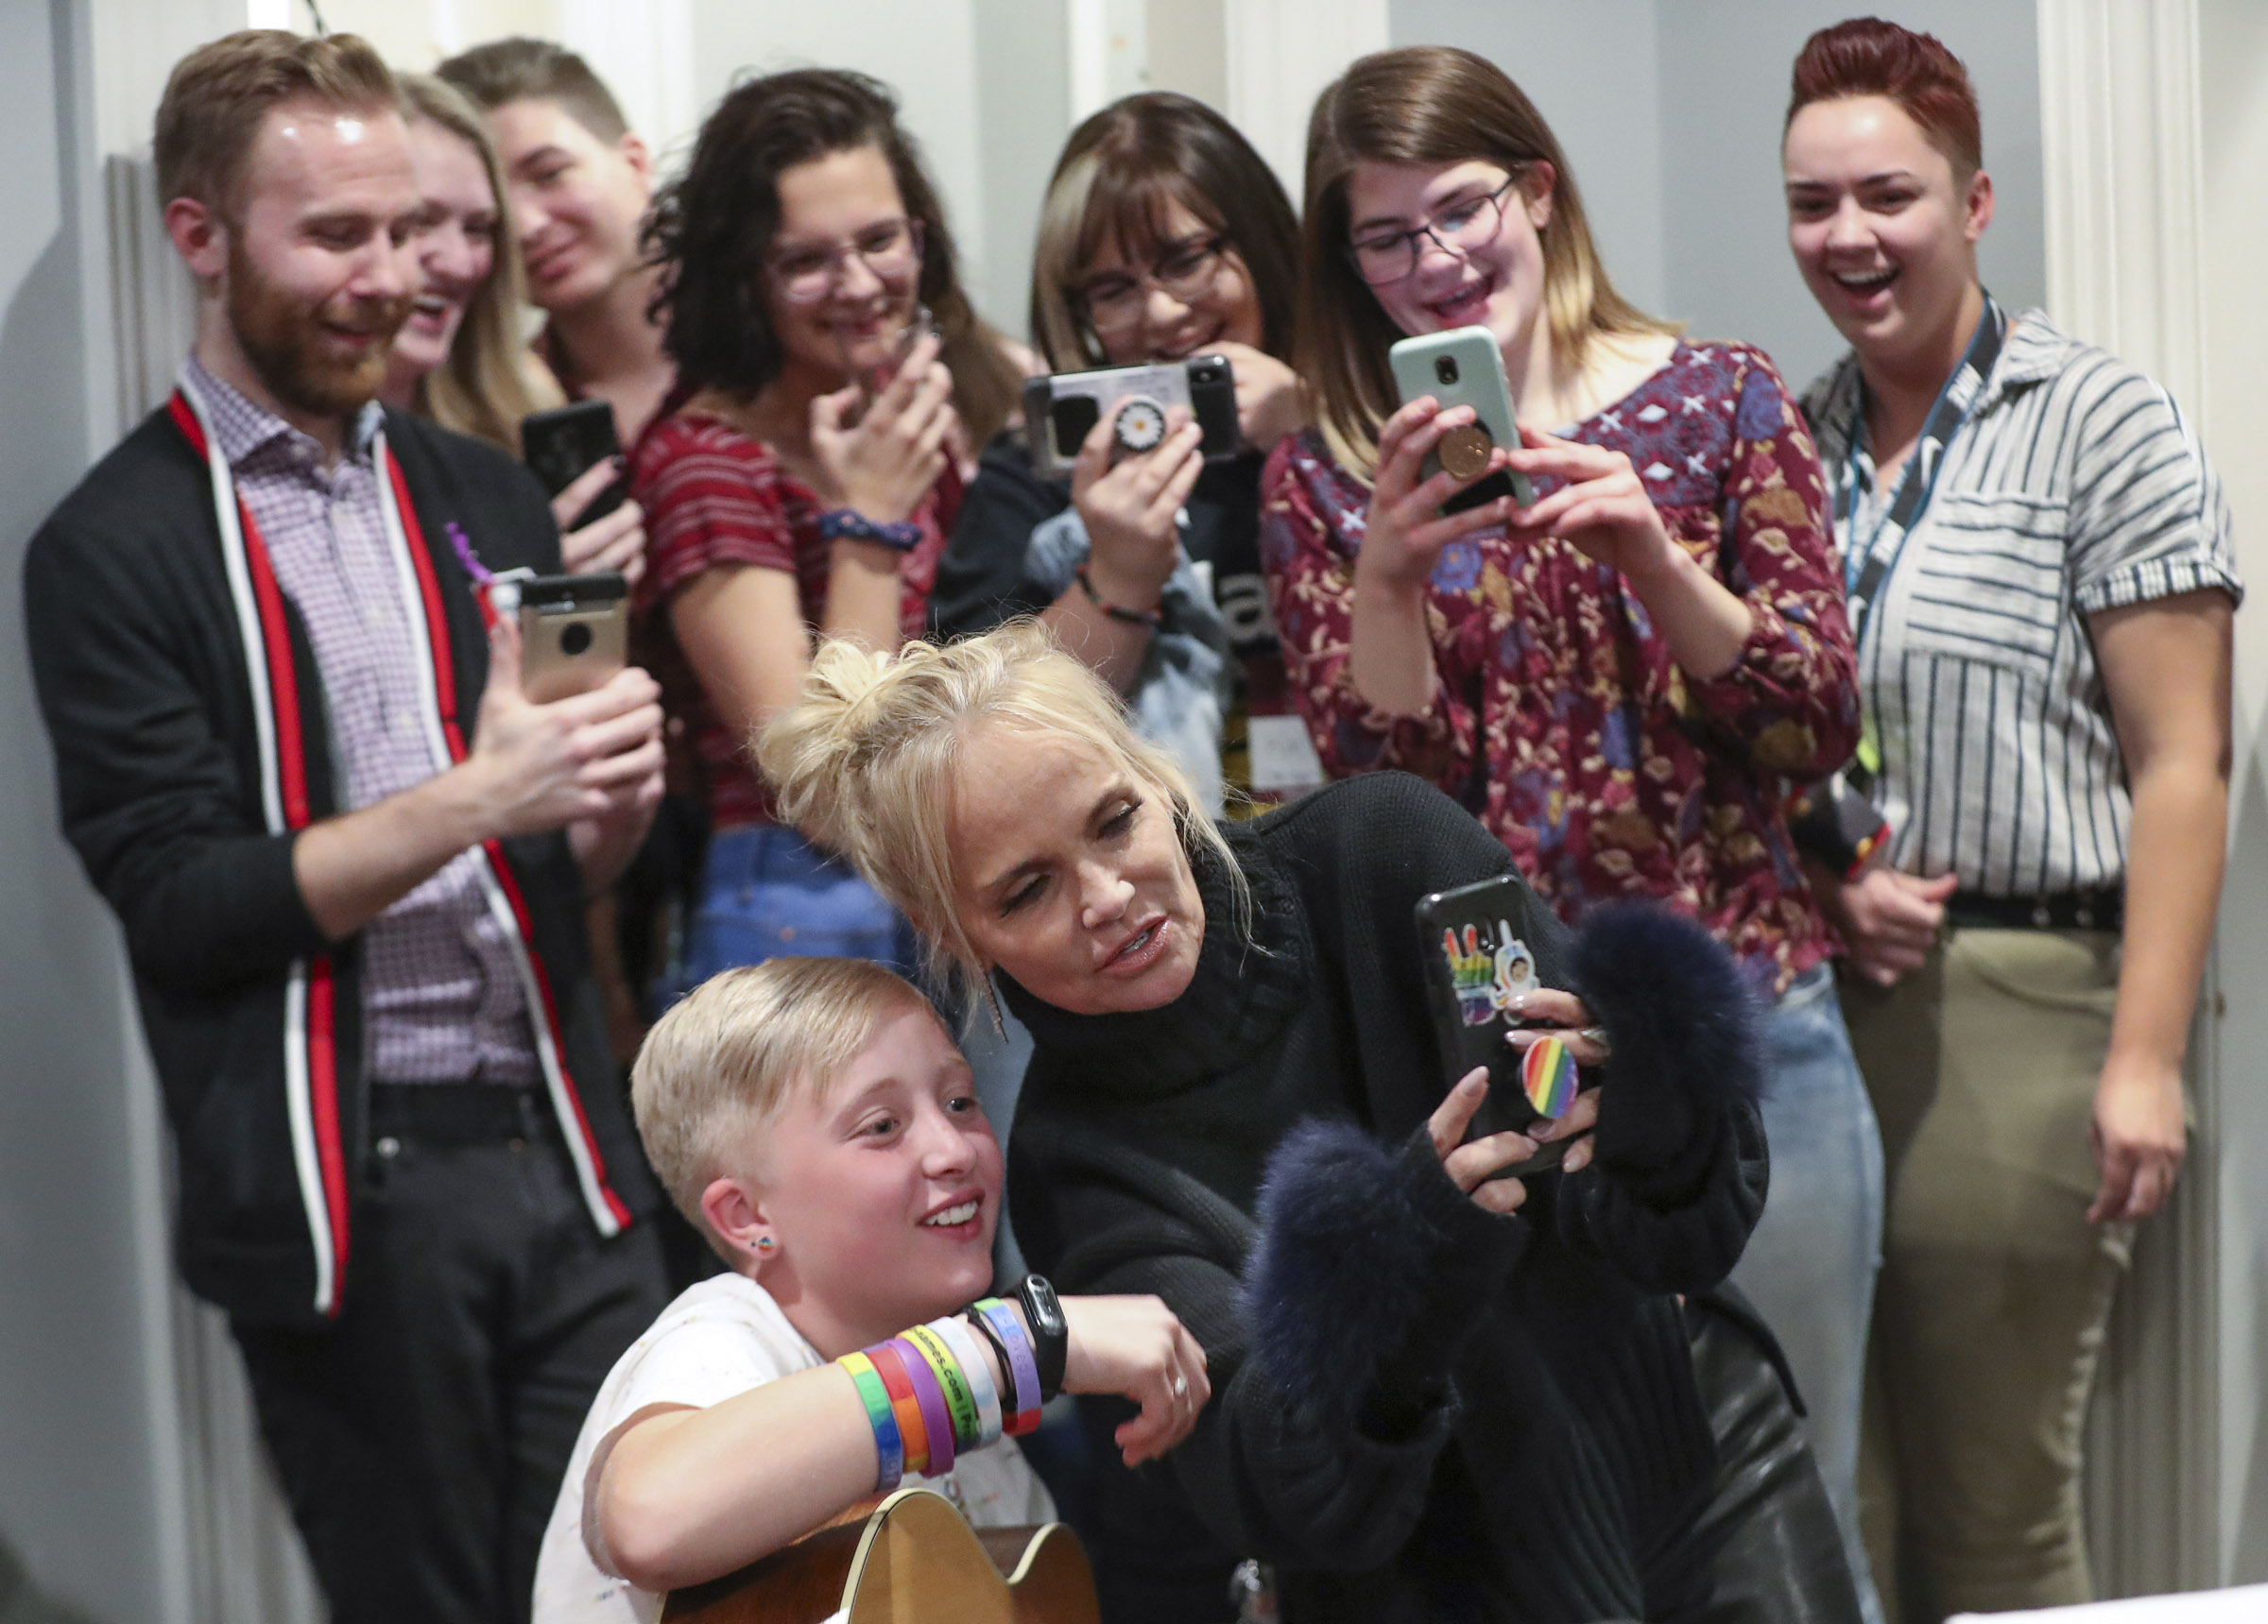 Actress Kristin Chenoweth poses for a selfie with Keeley Milner, who was celebrating her 12th birthday, as she sings during the Encircle SLC weekly music night in Salt Lake City on Thursday, Oct. 17, 2019. Encircle provides programs and other services for LGBTQ individuals to find information and support.